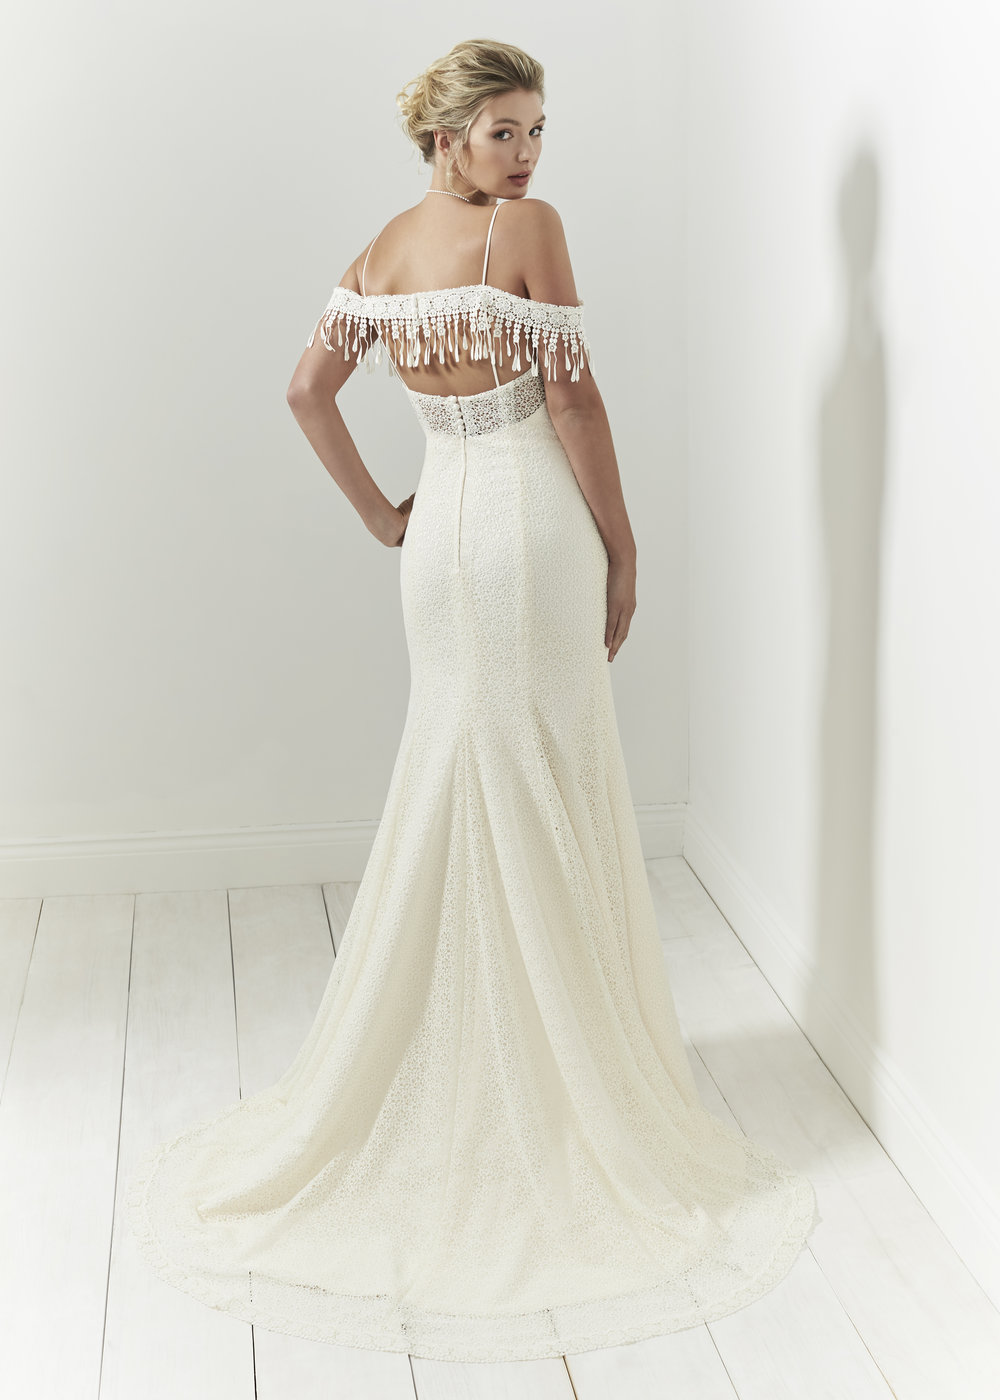 Peachleaf by Lily Rose Bridal, Romantica of Devon